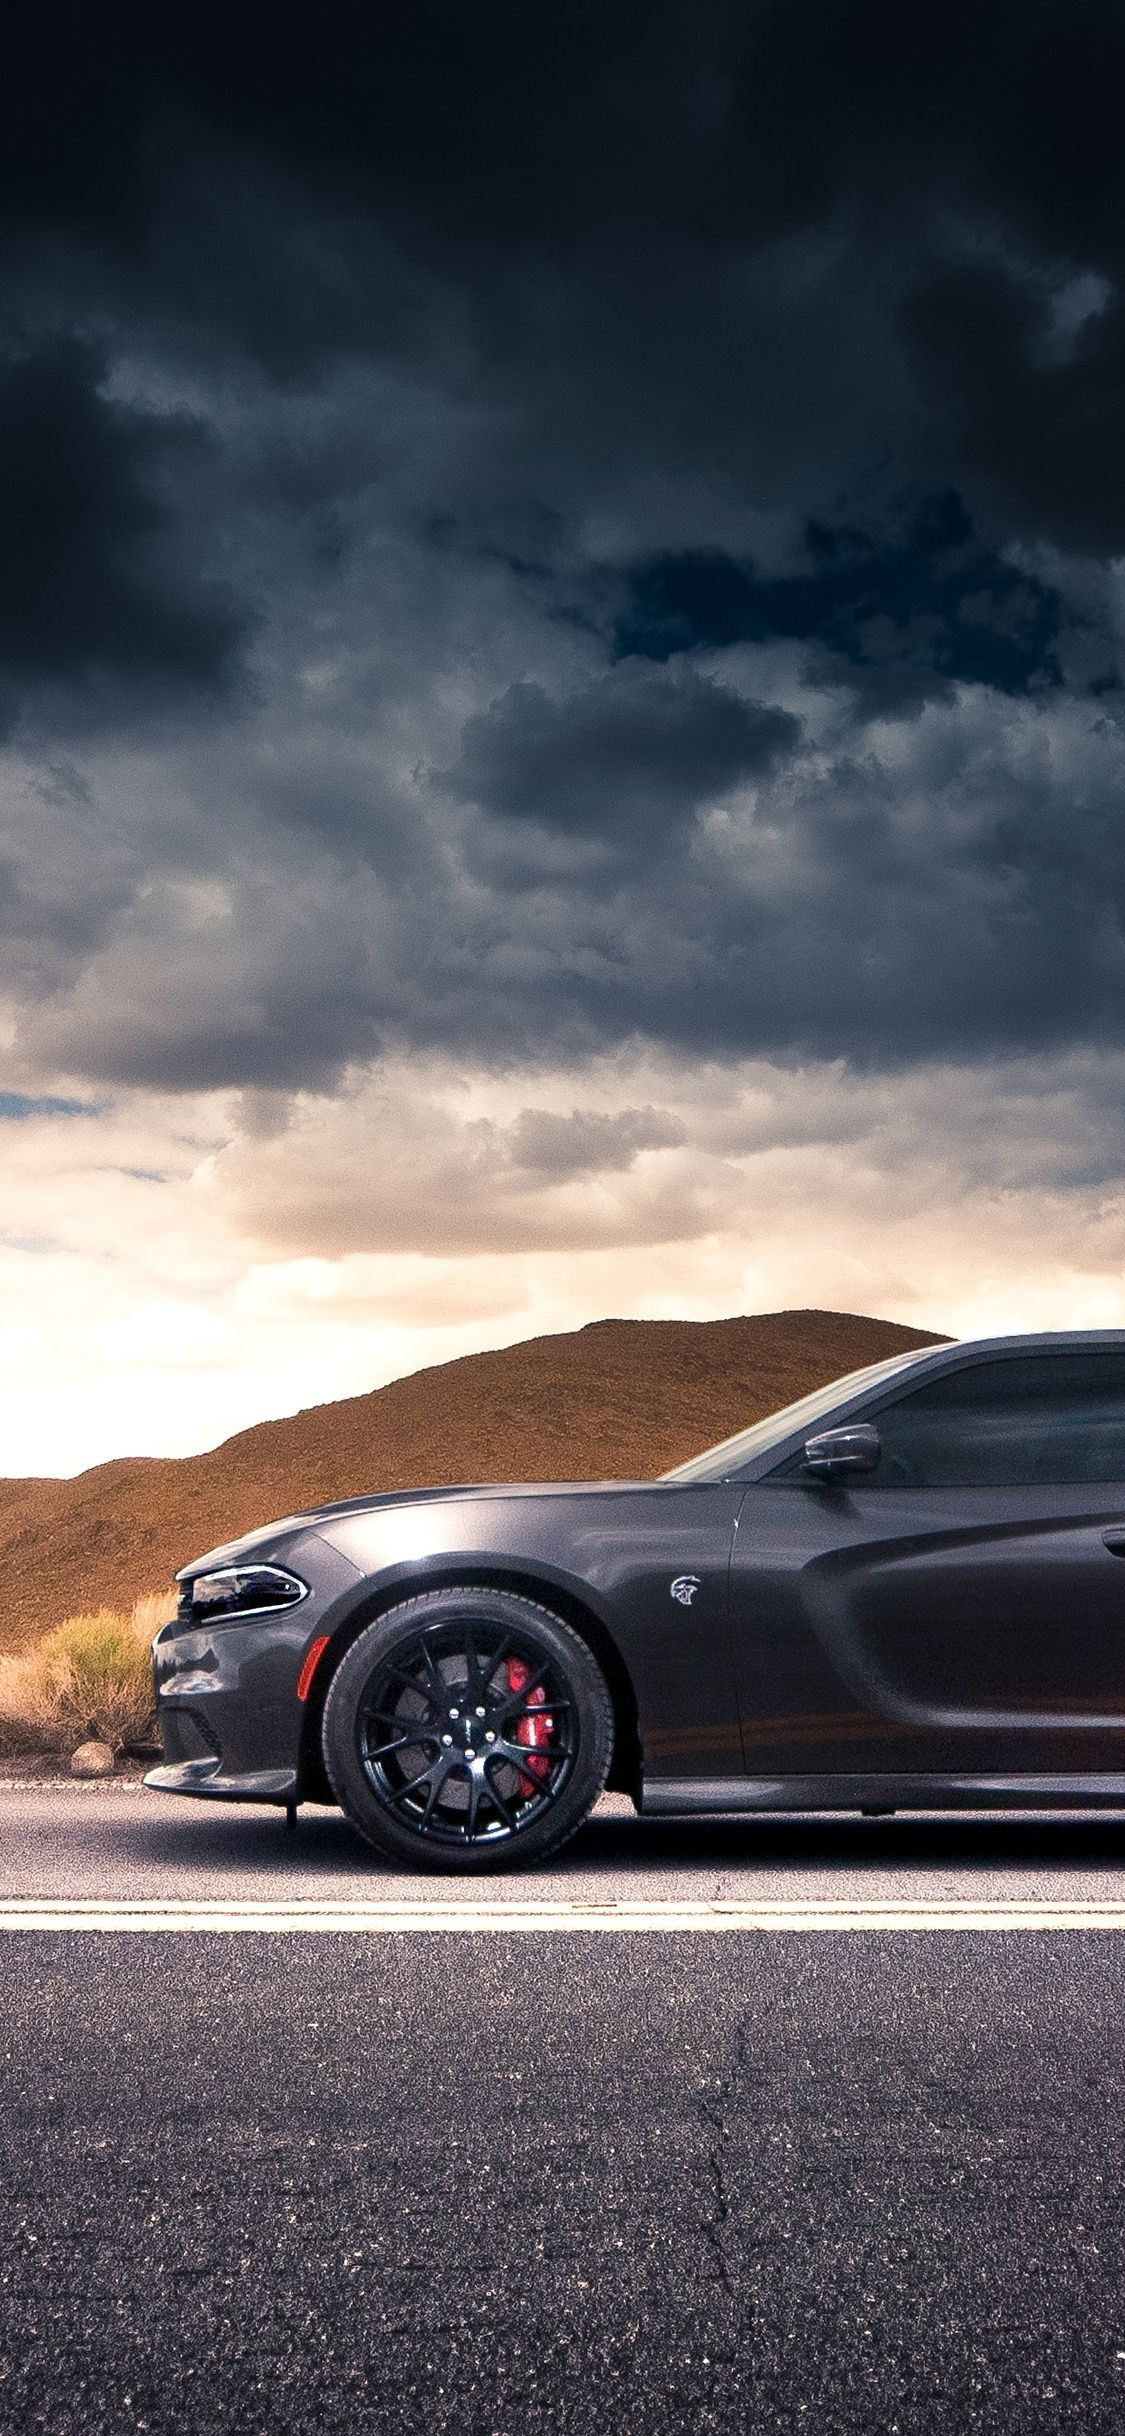 Dodge Charger Iphone Wallpapers Top Free Dodge Charger Iphone Backgrounds Wallpaperaccess